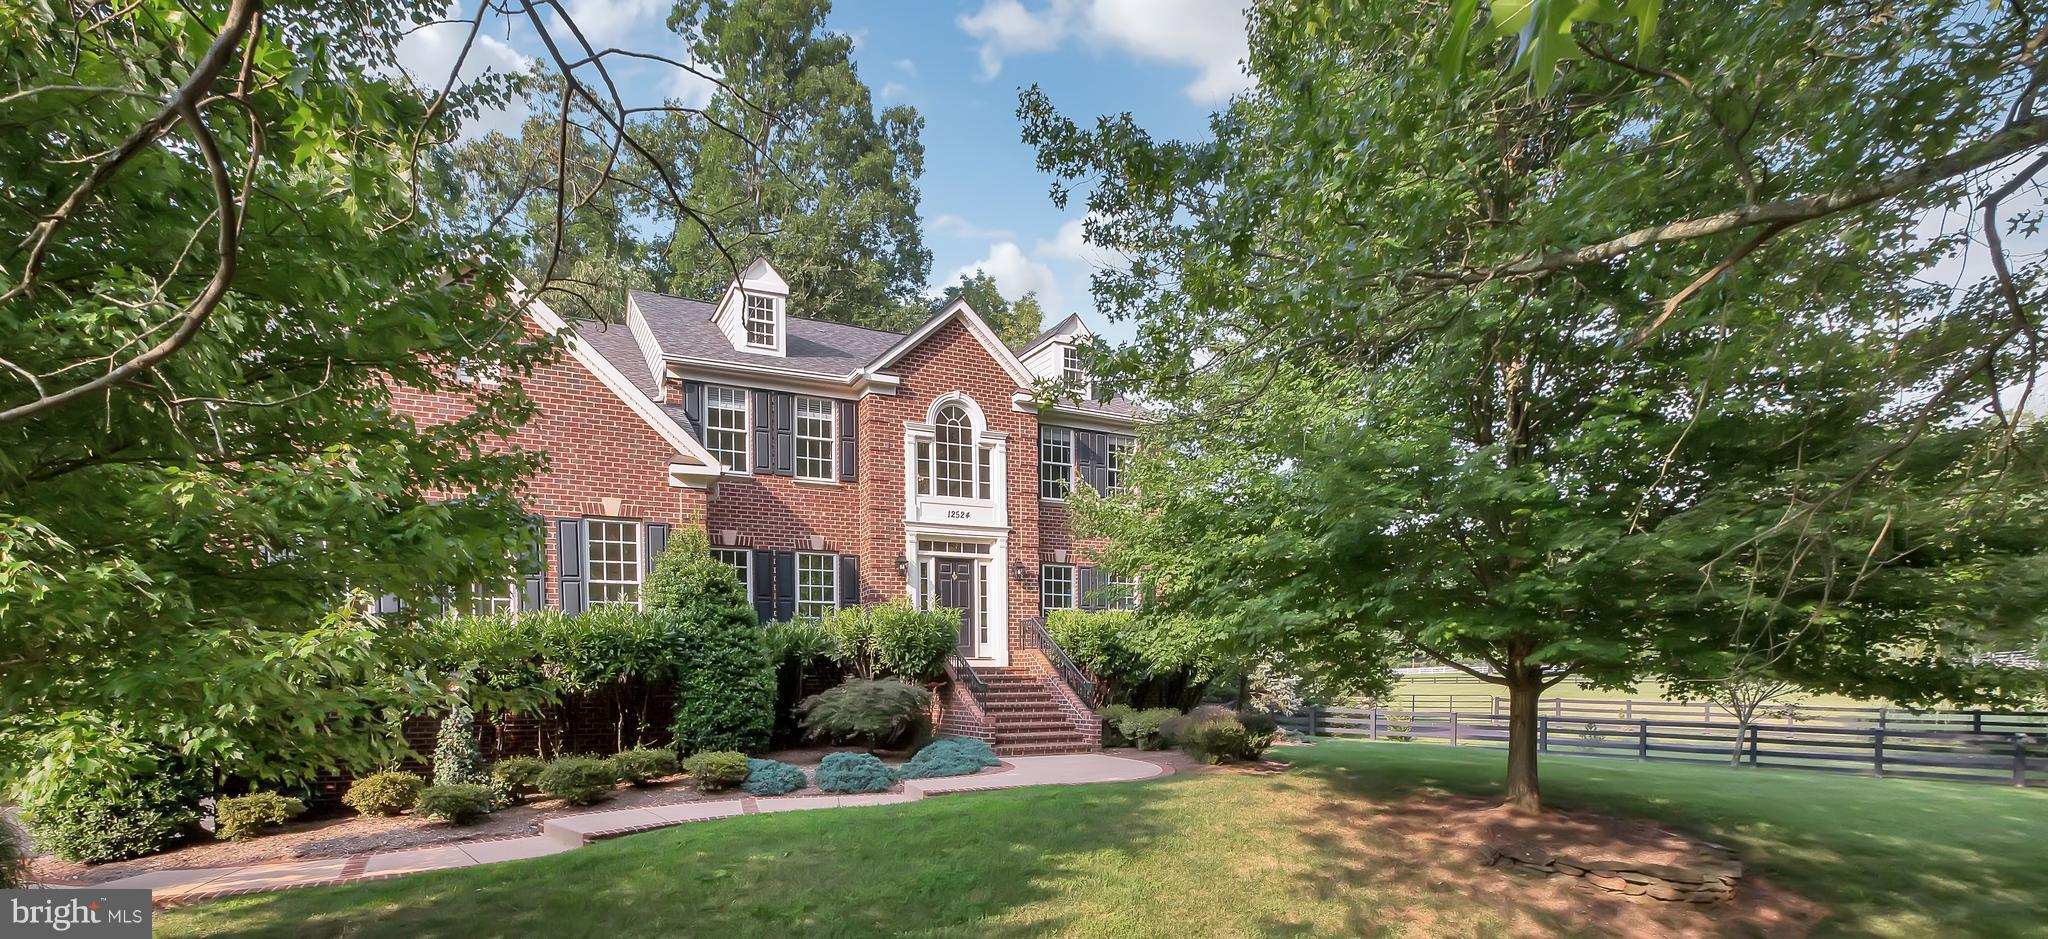 Spectacular living with a countryside feel on the exterior and luxurious on the interior that will impress you at every corner. 5000sft on 1 ac.. Super layout with 4 Br+ 4.5 Bth incl Den, Family Room w/FP off Gourmet Kitchen. Beautiful Cherry Maple Cabinetry w/Upgraded Appliances & Center Island. Breakfast Area overlooking grounds. Must See Top Floor BR's incl Master Suite w/Tray Ceilings &Sitting